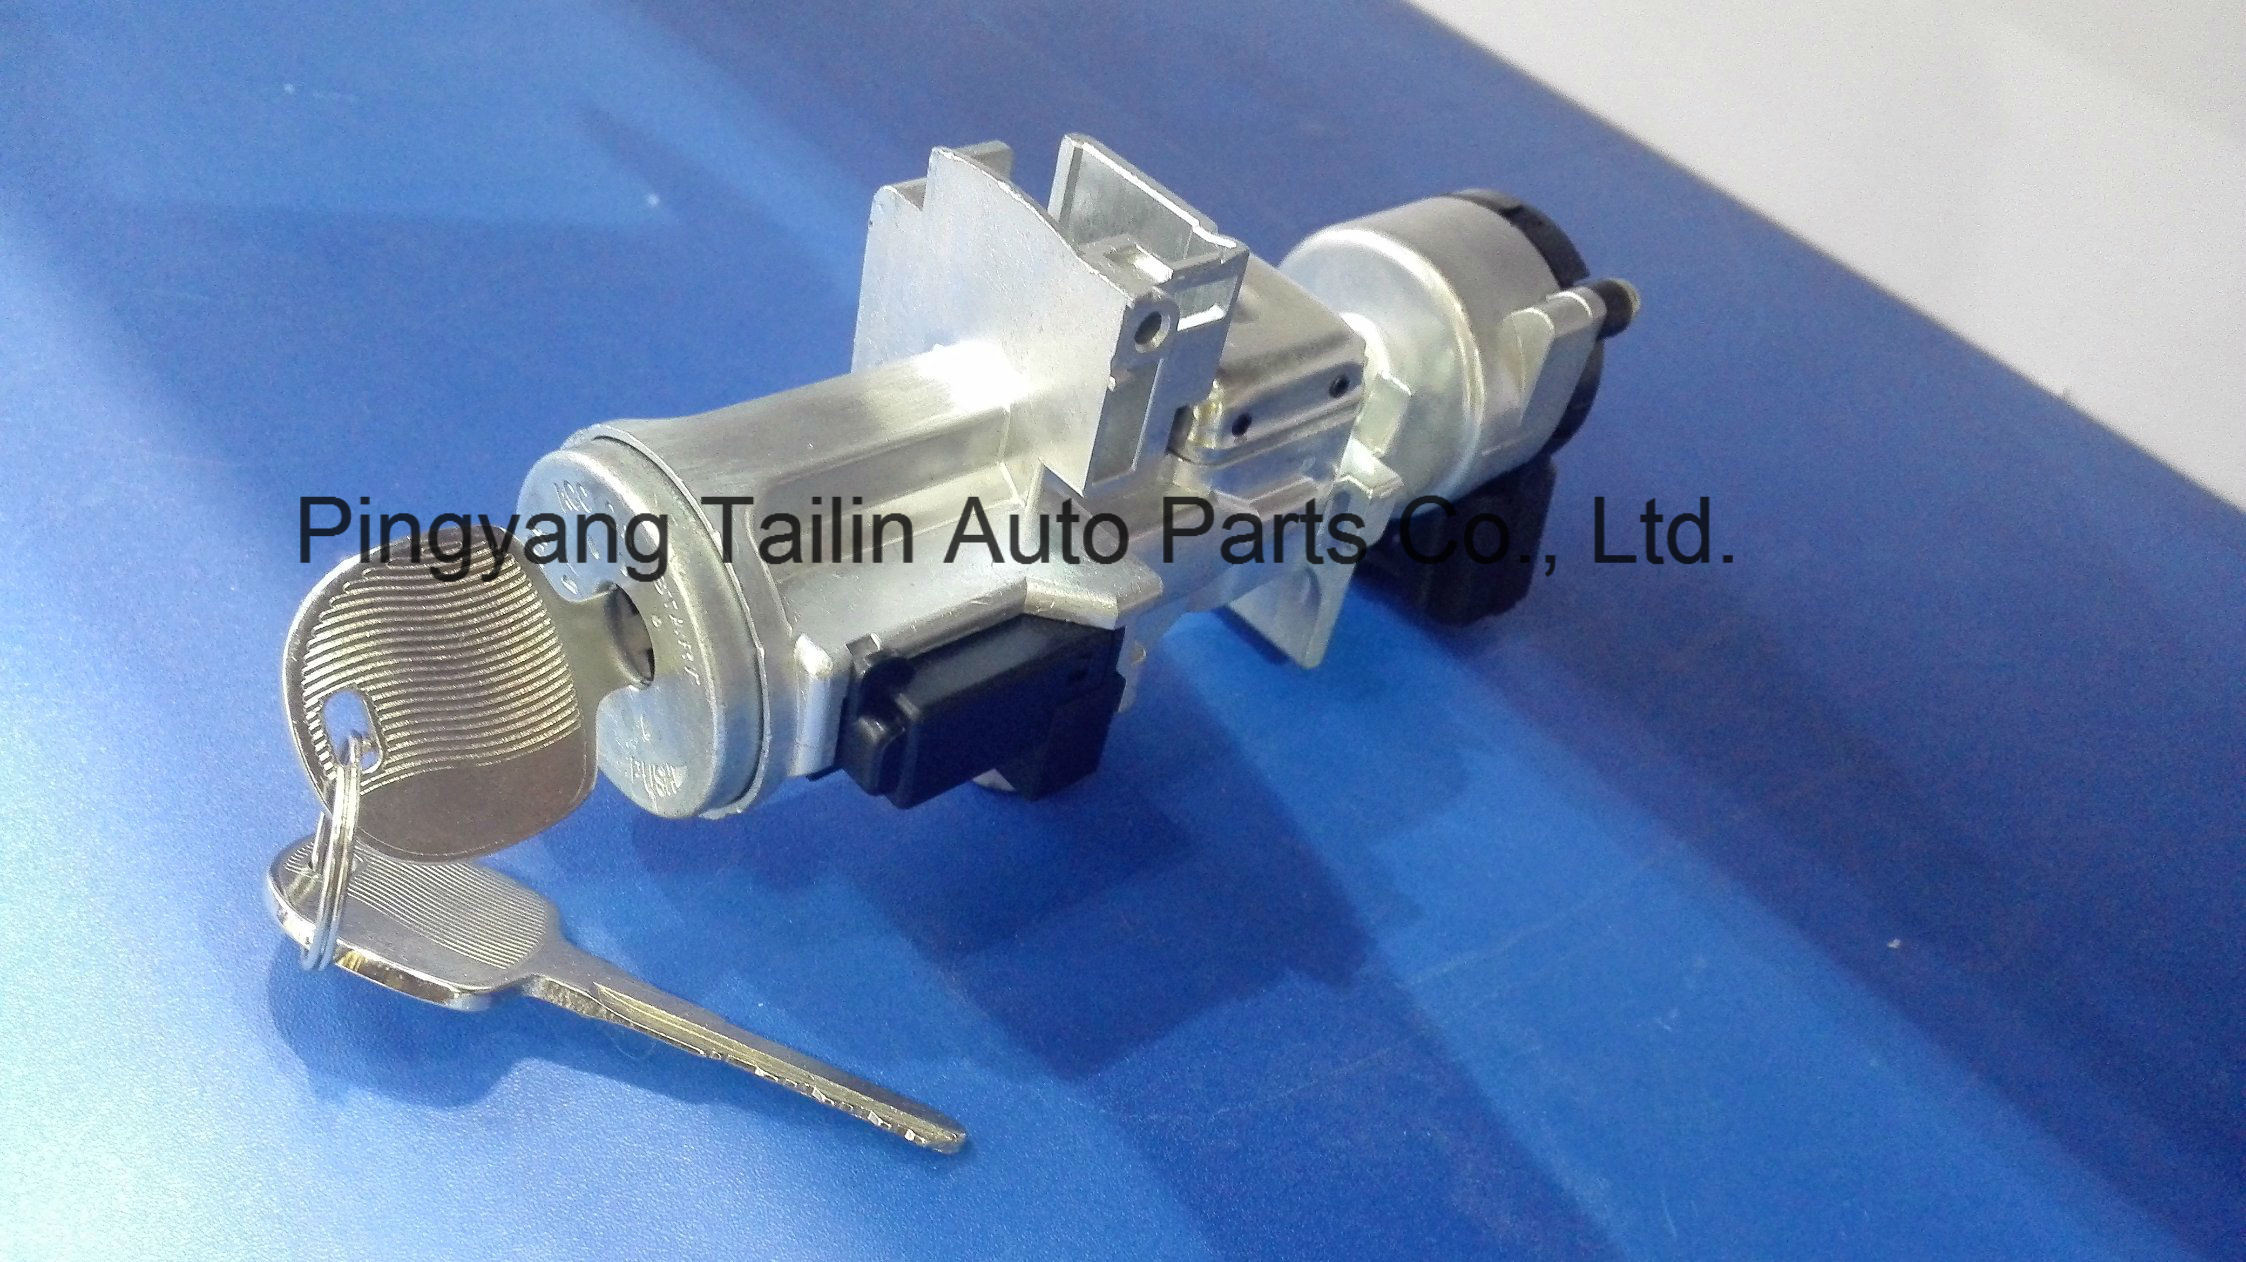 Ignition Switch for Isuzu 700p